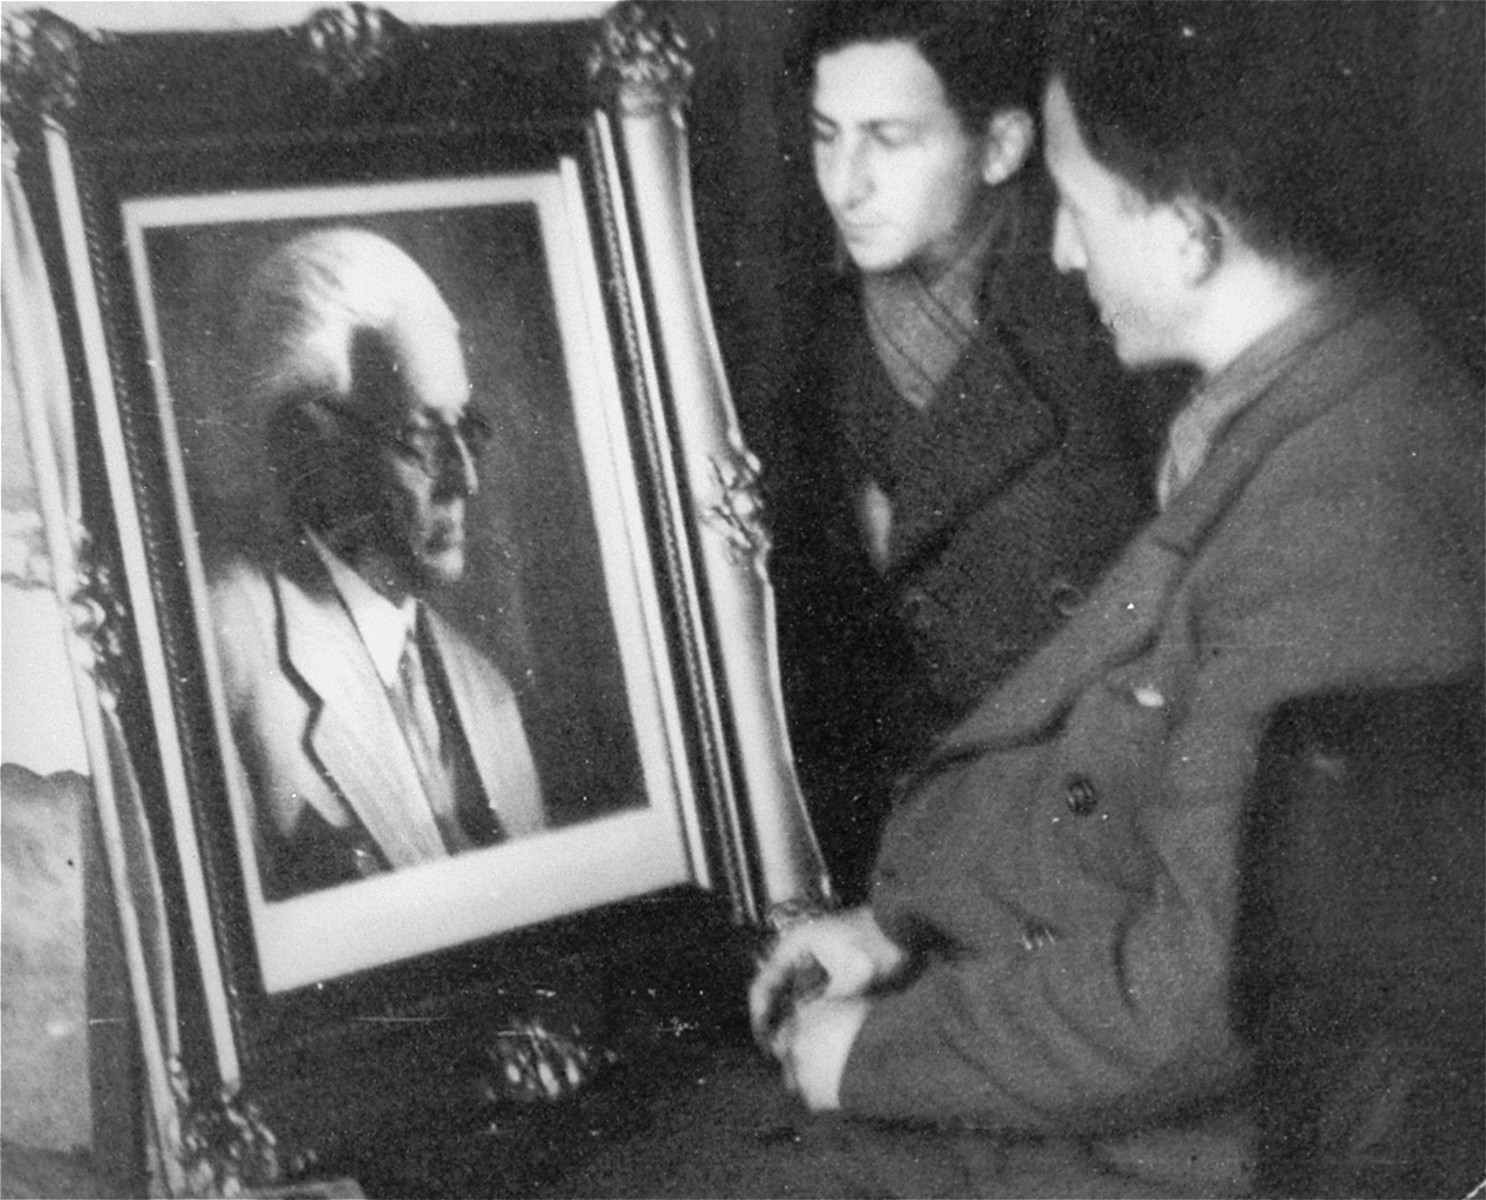 Nachman Zonabend (center) and Mendel Grosman (right) examine a framed portrait of Jewish Council chairman Mordechai Chaim Rumkowski.    The portrait was photographed by Mendel Grosman and had to be displayed in every office in the Lodz ghetto. The original framed portrait was given to Rumkowski.